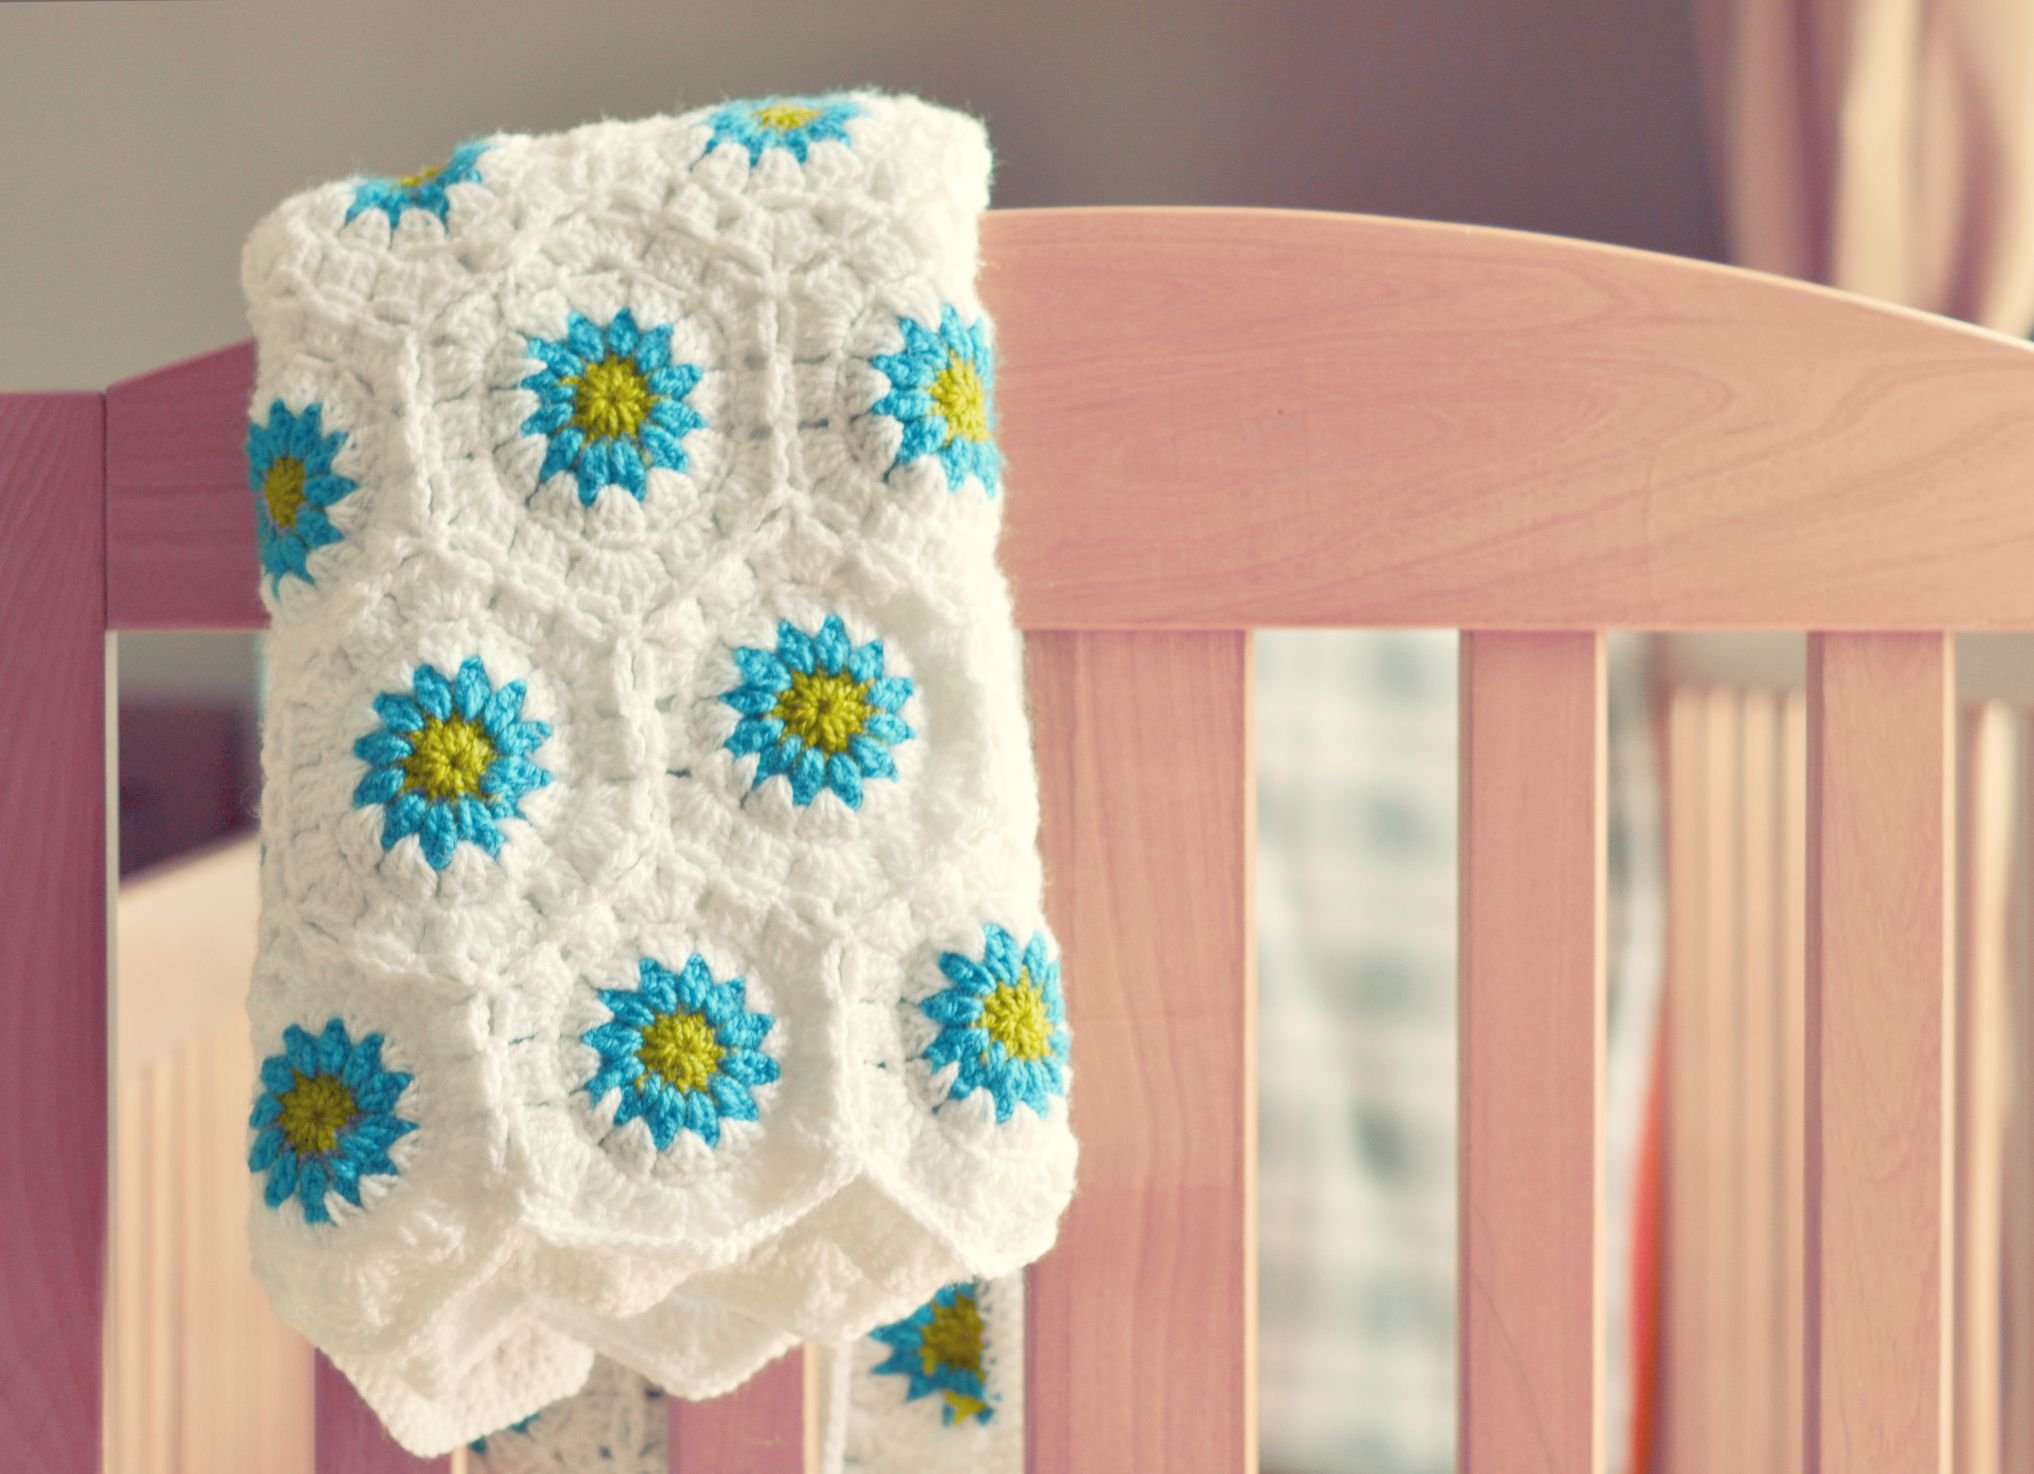 How to Care for Crochet Blankets and Clothing